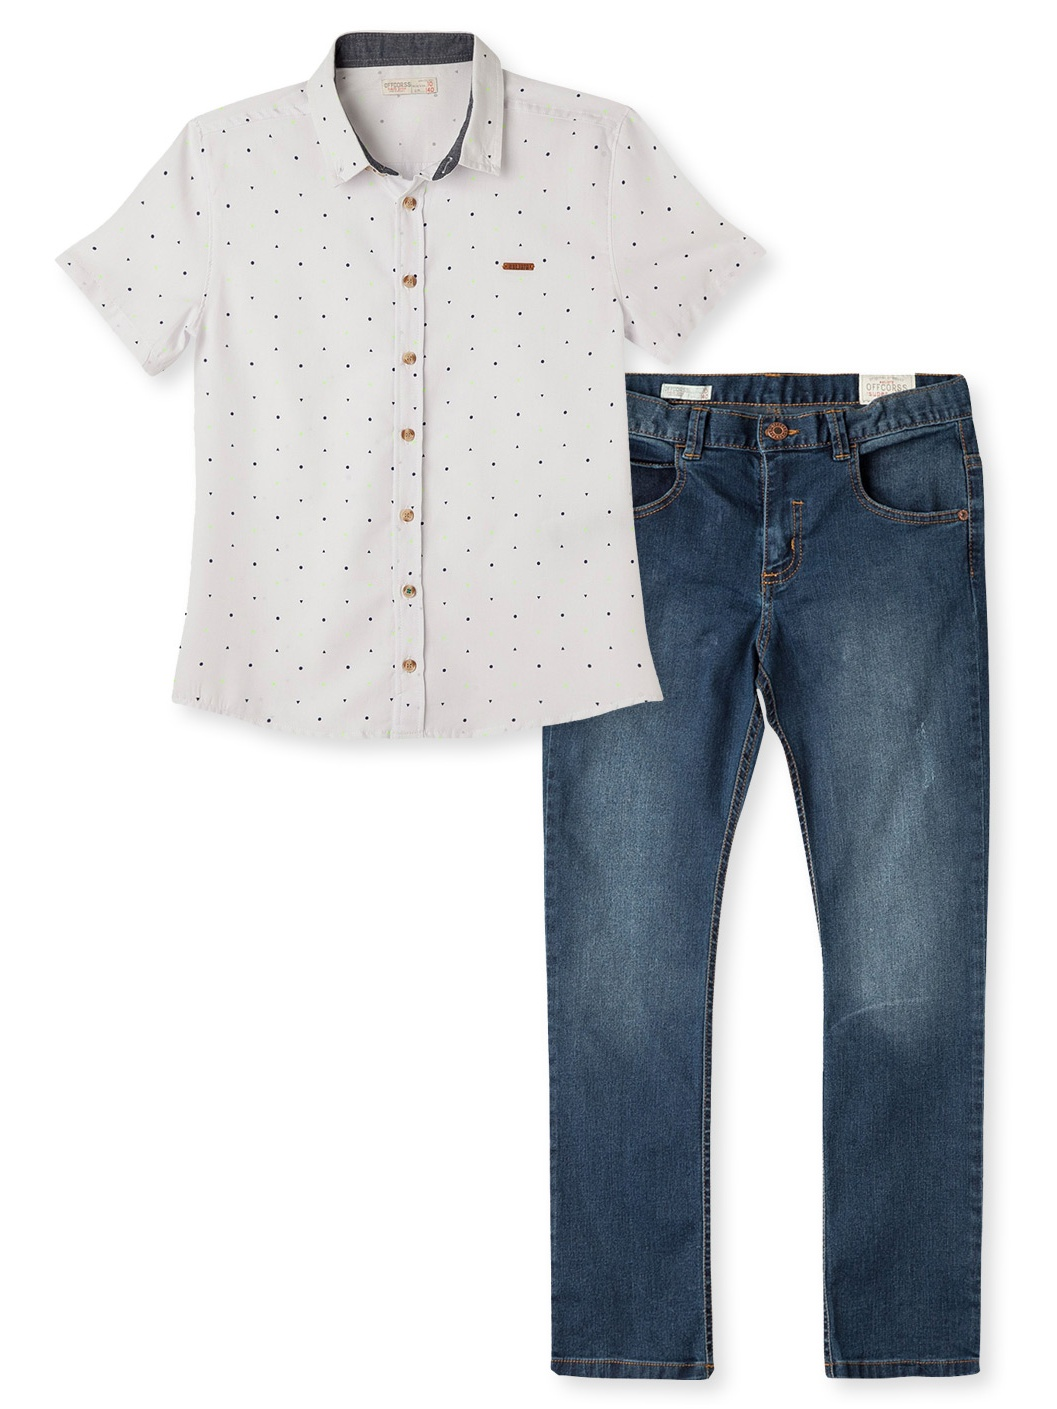 OFFCORSS Short Sleeve Shirts Jeans For  Boys